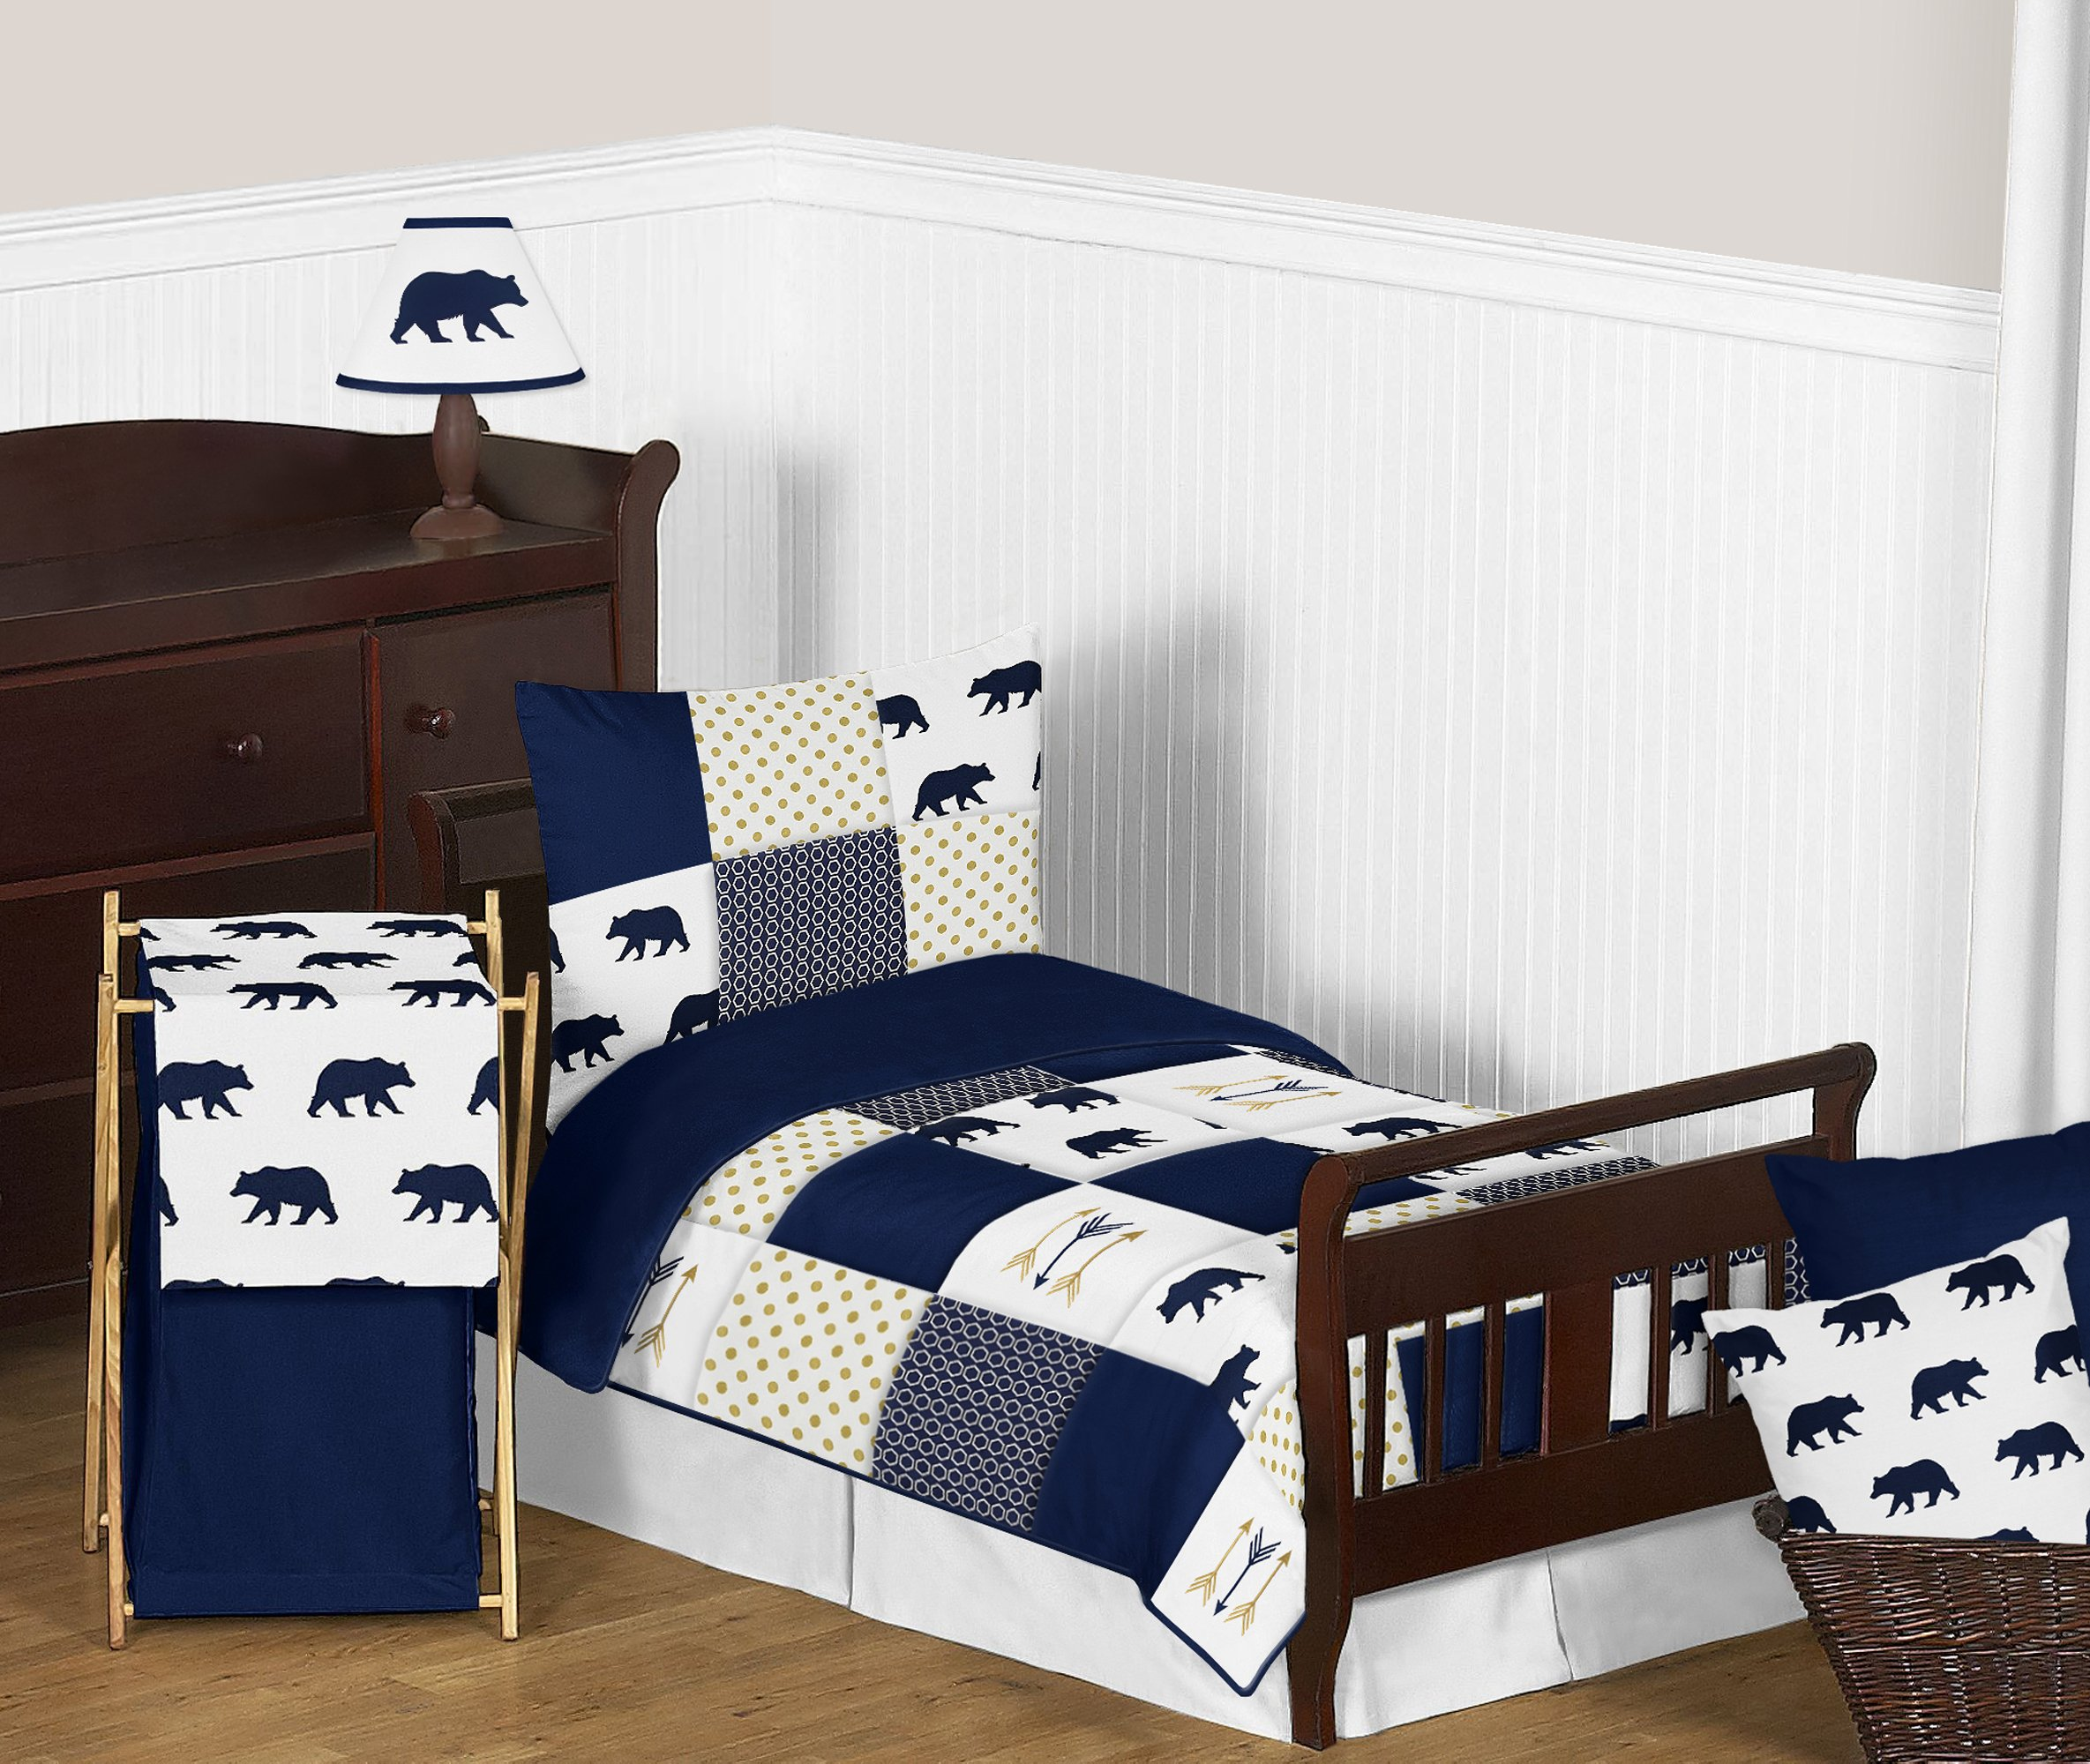 Sweet Jojo Designs 5-Piece Navy Blue, Gold, and White Big Bear Boy Toddler Kid Childrens Bedding Set s Comforter, Sham and Sheets